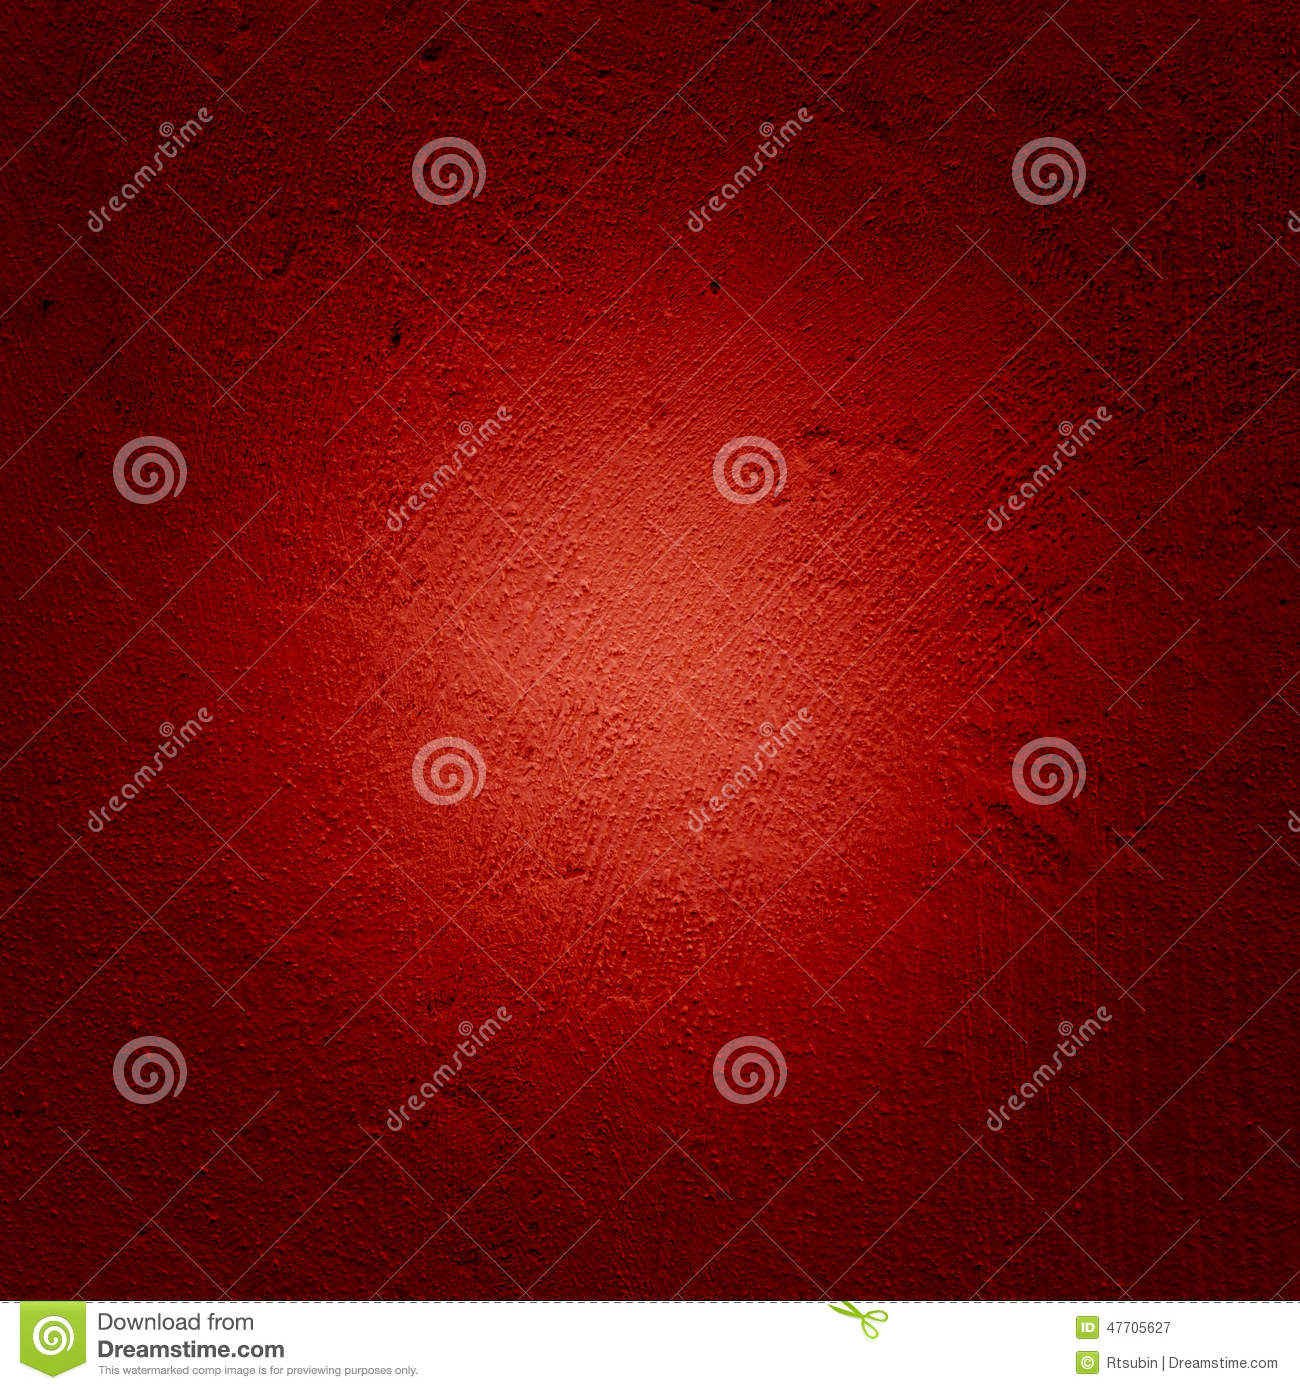 red stone texture background stock image image of